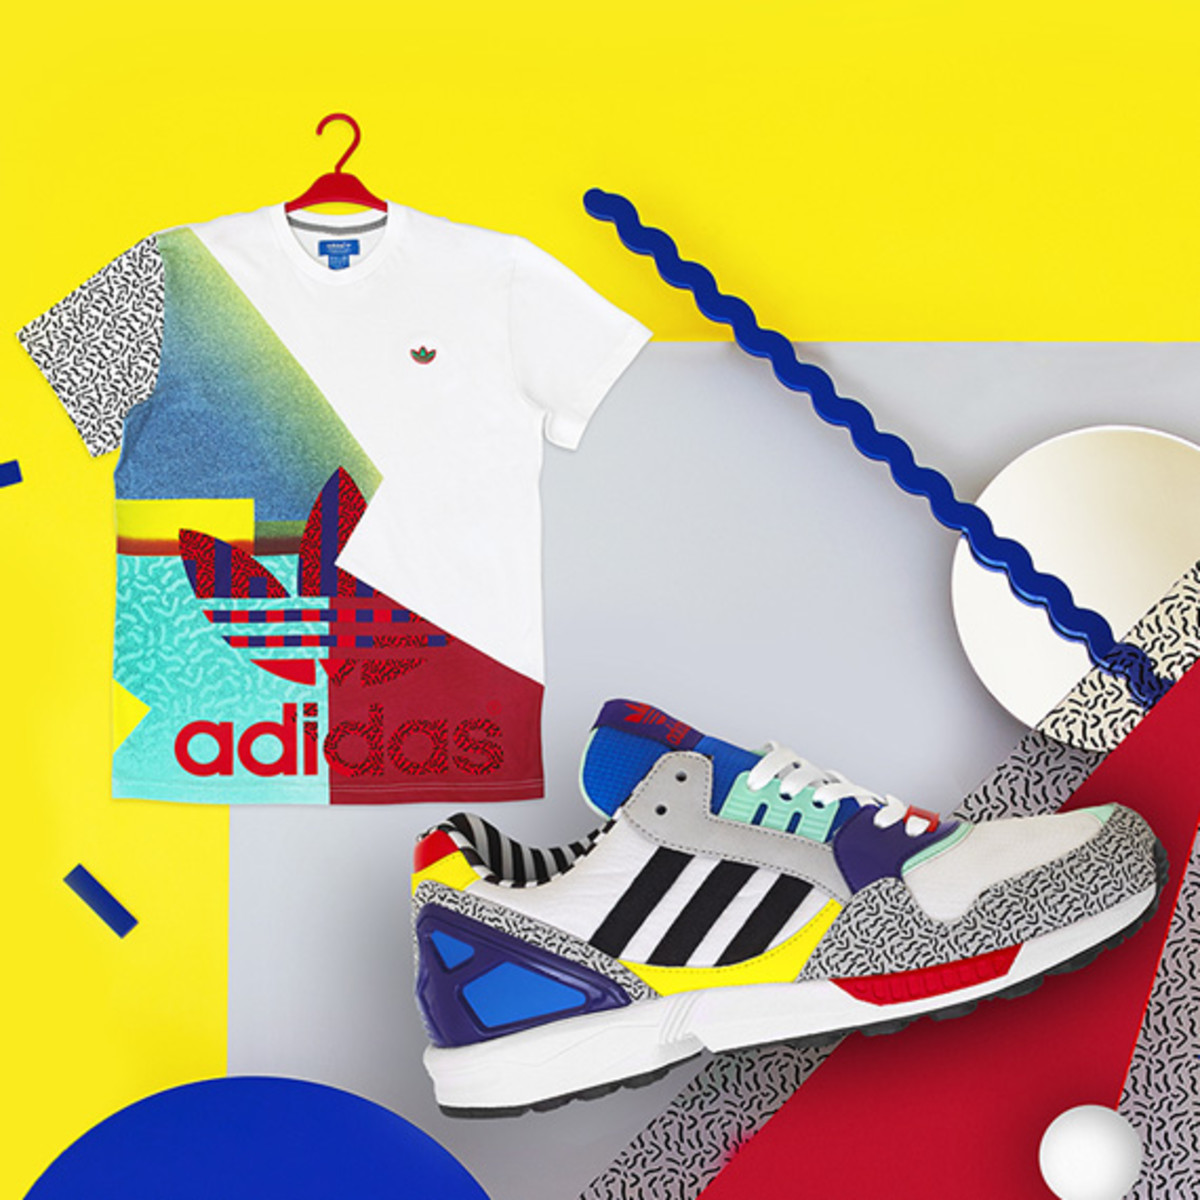 adidas-originals-select-collection-size-uk-exclusive-06